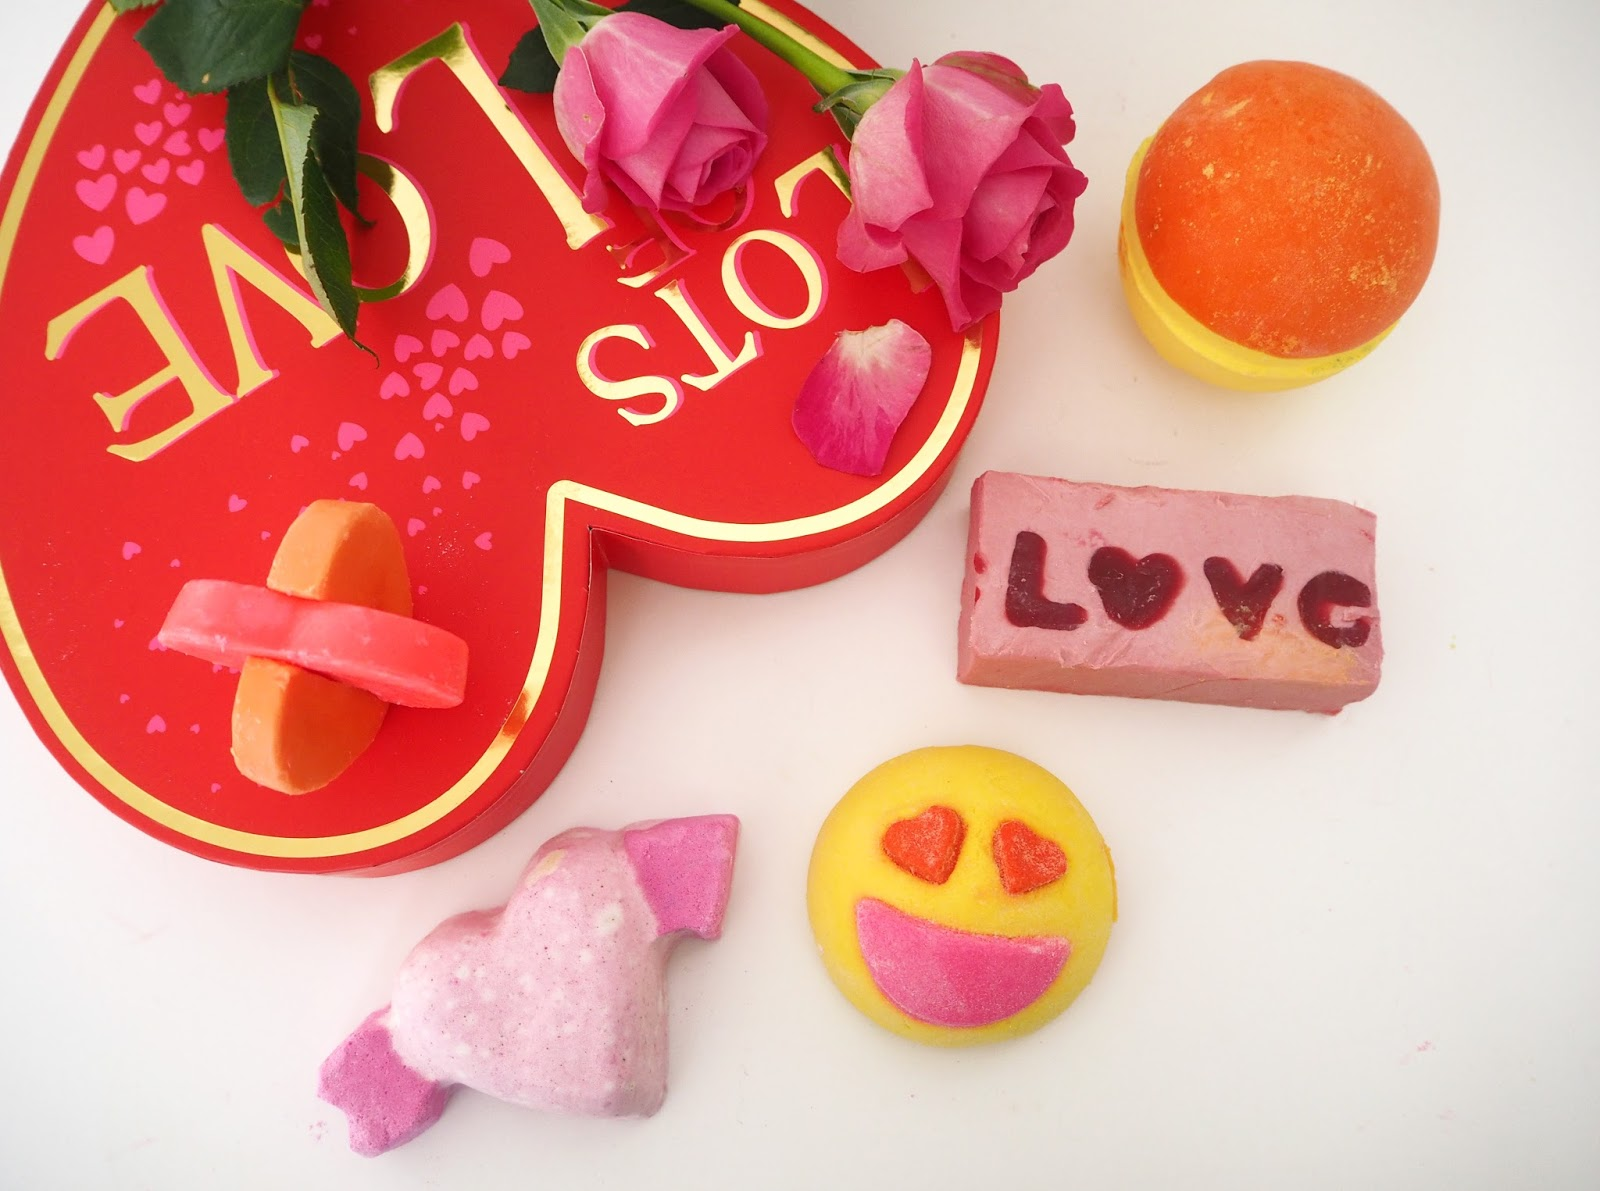 Lush Cosmetics Valentines 2017 Collection, Katie Kirk Loves, Lush Cosmetics UK, Lush 2017, Beauty Blogger, UK Blogger, Gifts For Her, Valentine's Day Gifts, Gift Ideas, Lush Review, Lush Gifts, Bath & Body Products, Blogger Review